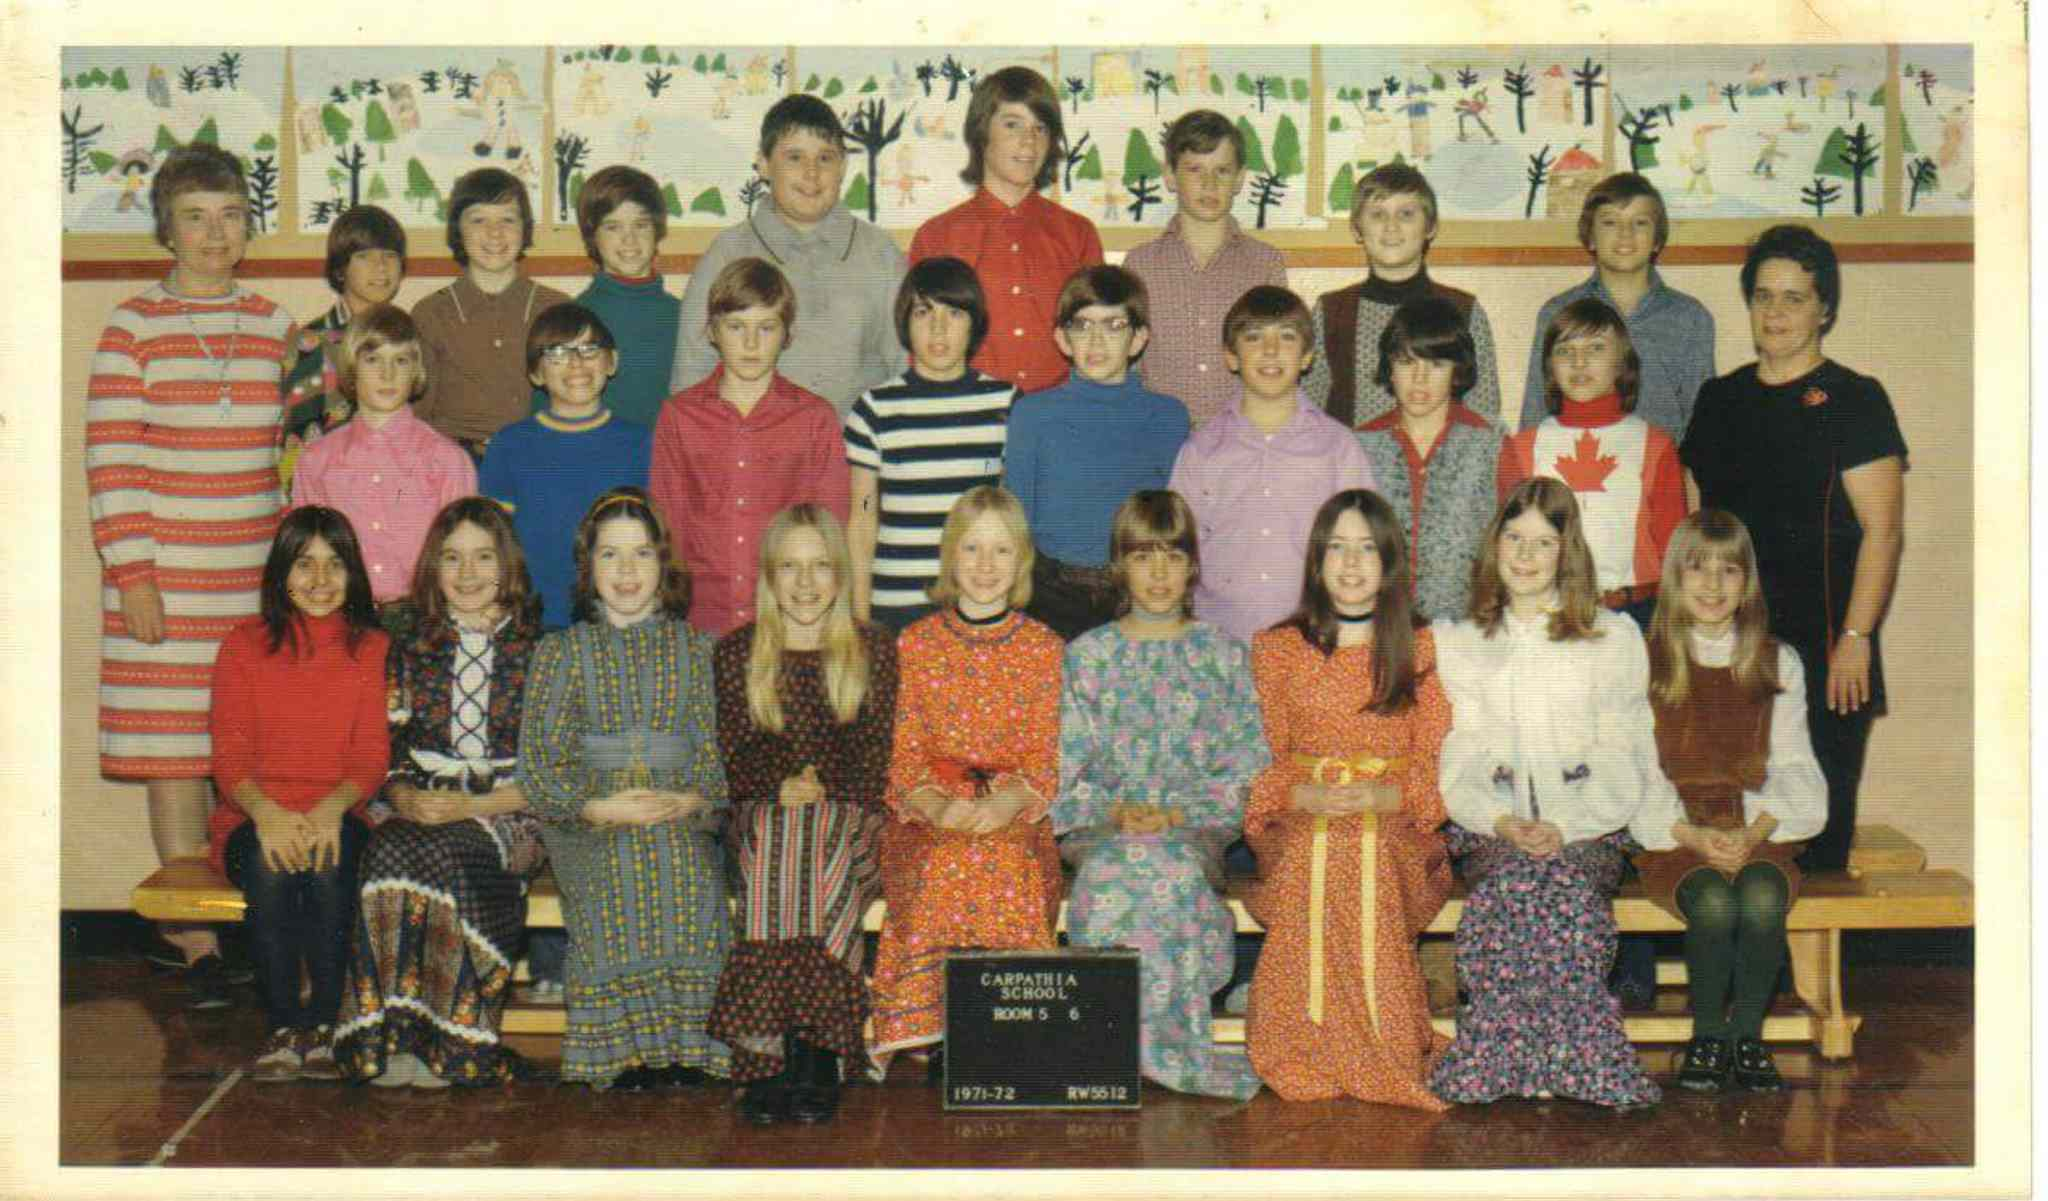 Steven Vincent (back row, third from left) and Allan Doern (middle row, far right) were classmates.